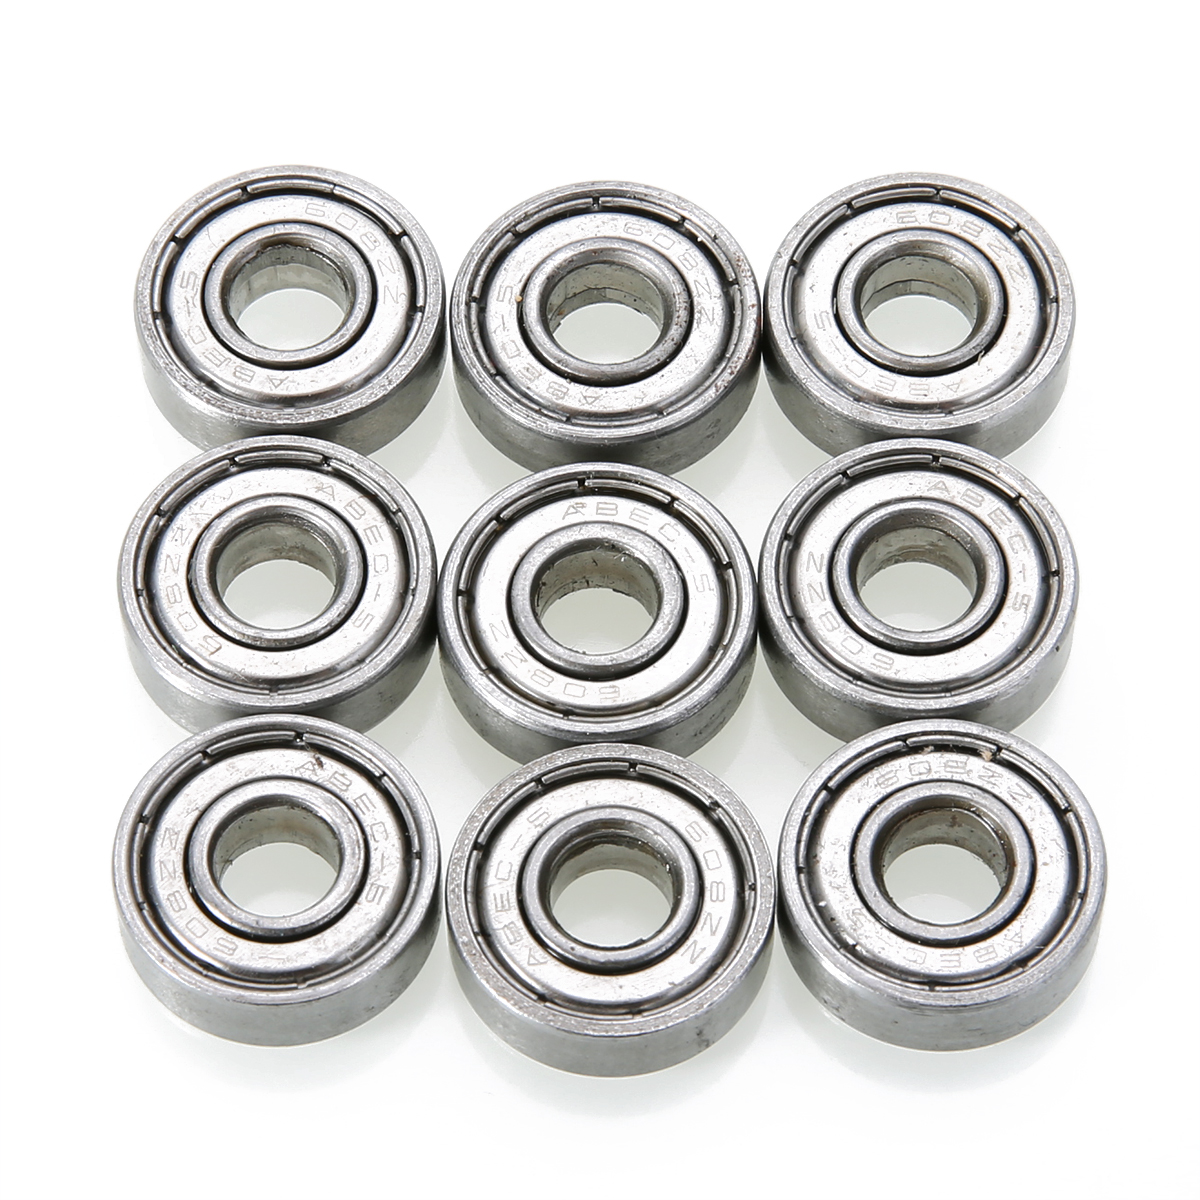 10pcs 608zz Deep Groove Bearing Steel Ball Bearings Grease Skateboard Roller Blade Scooter Inline Skating Mayitr